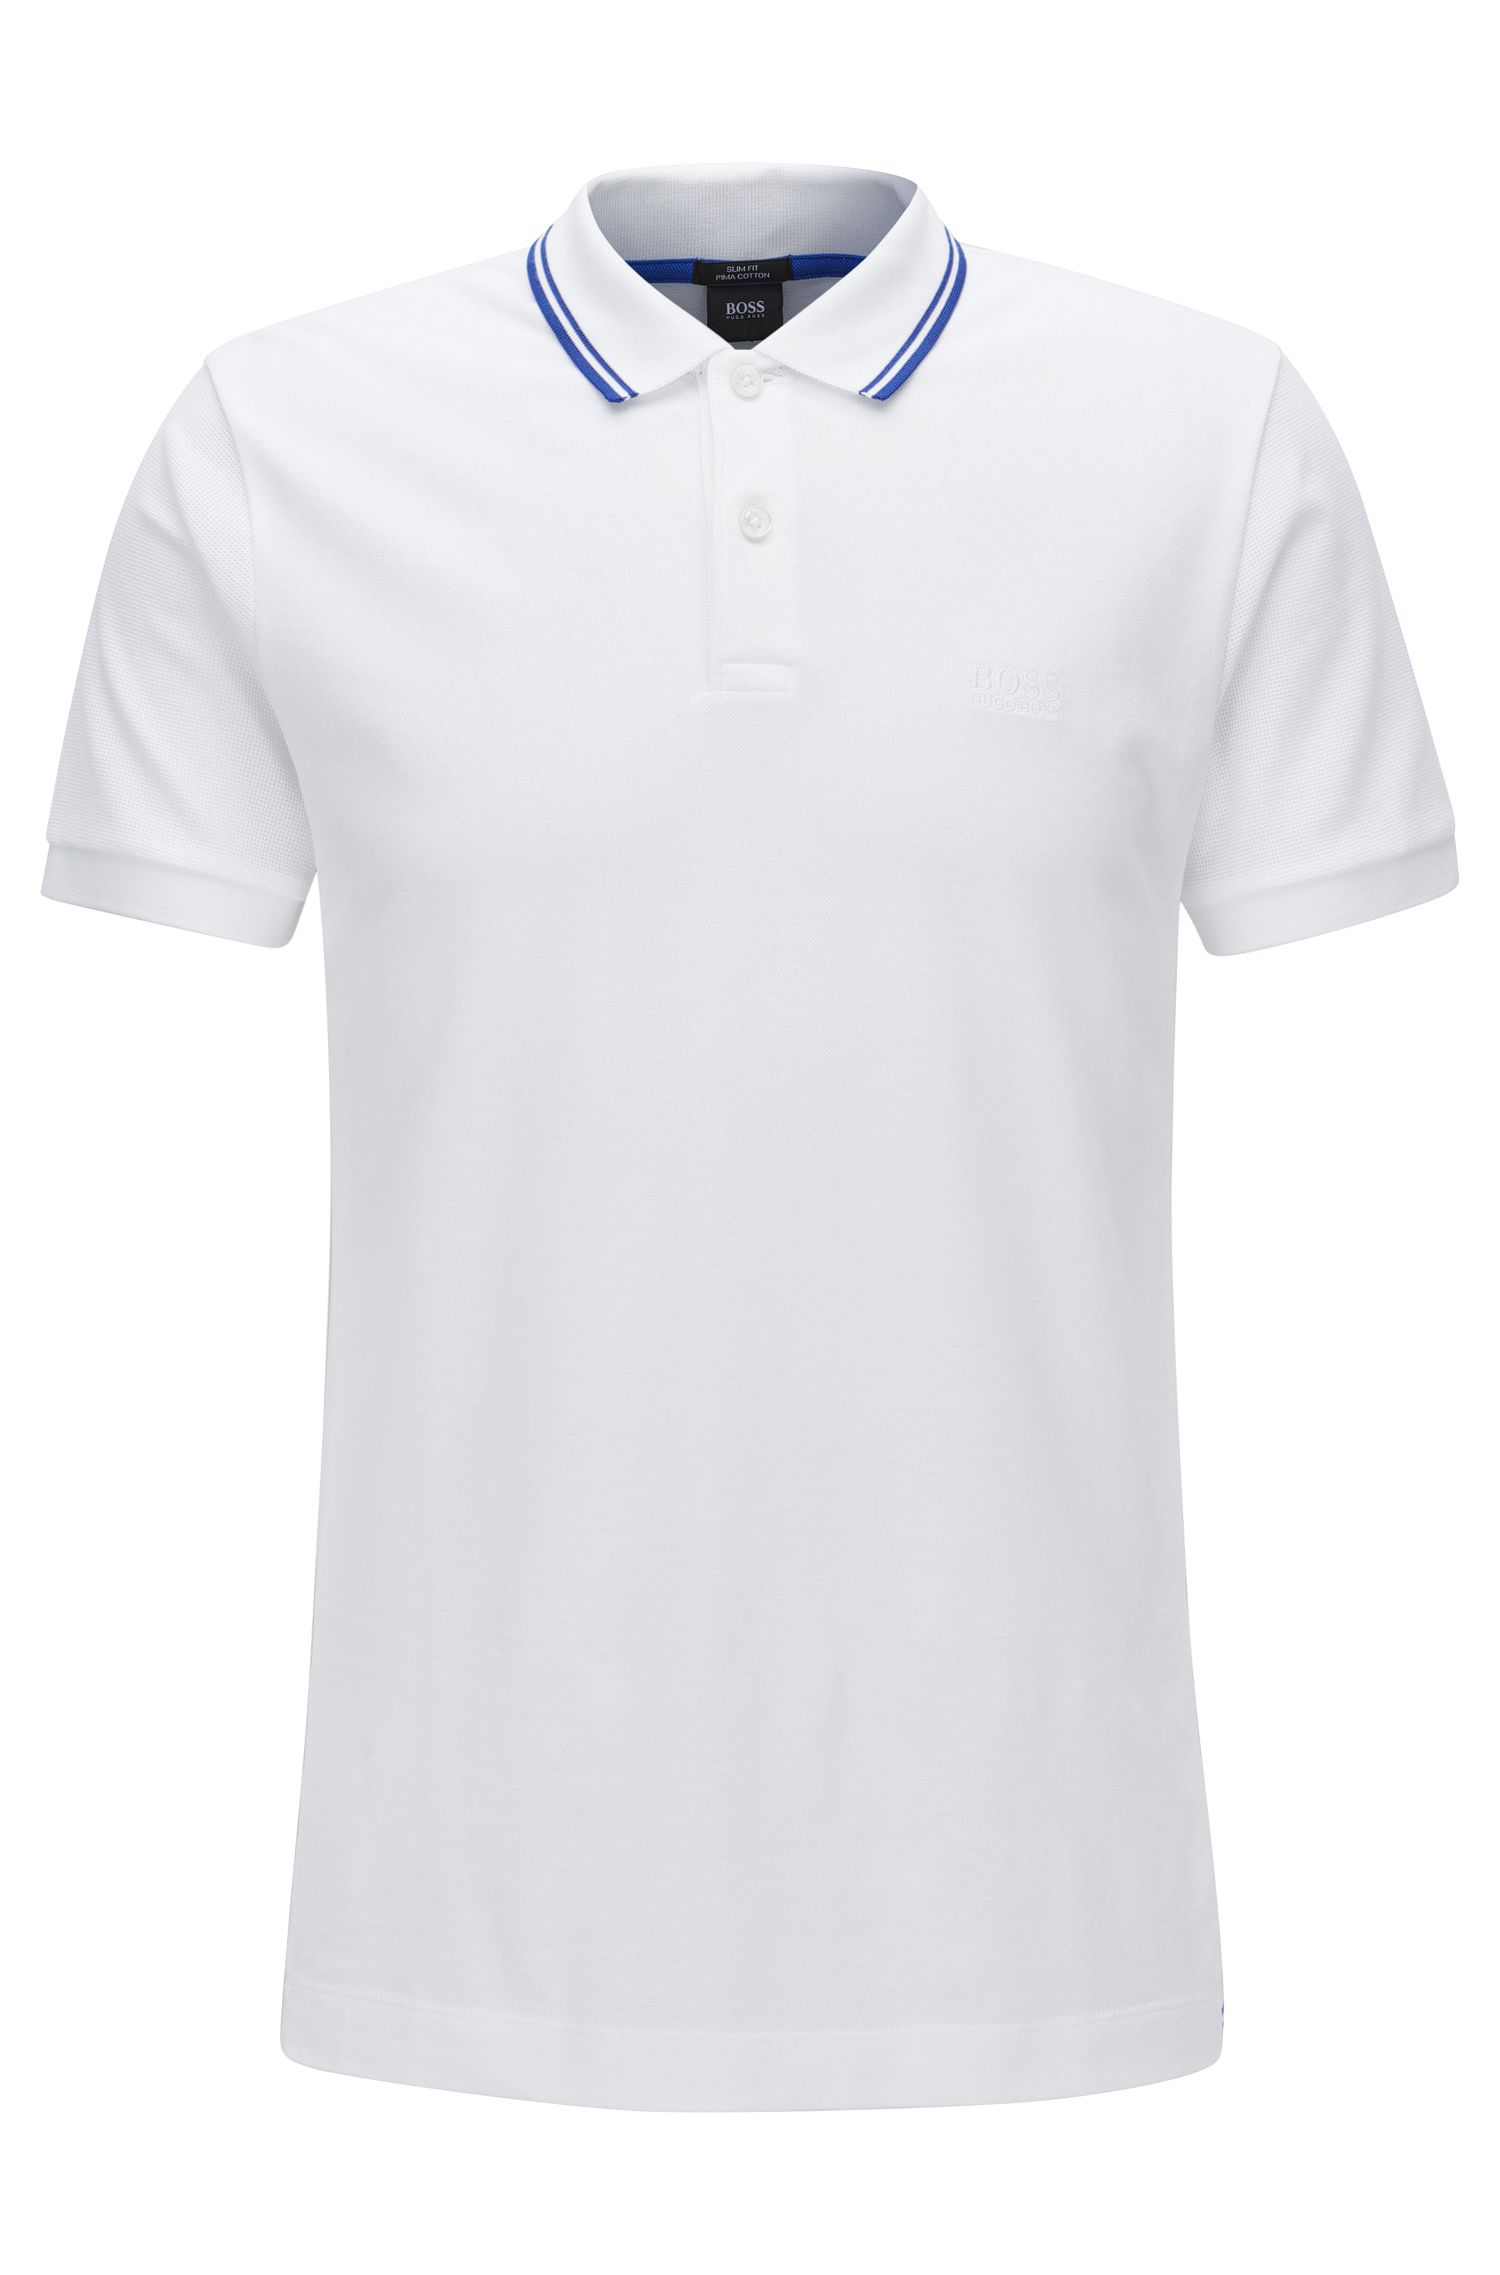 Slim-fit cotton polo shirt in a knitted mix